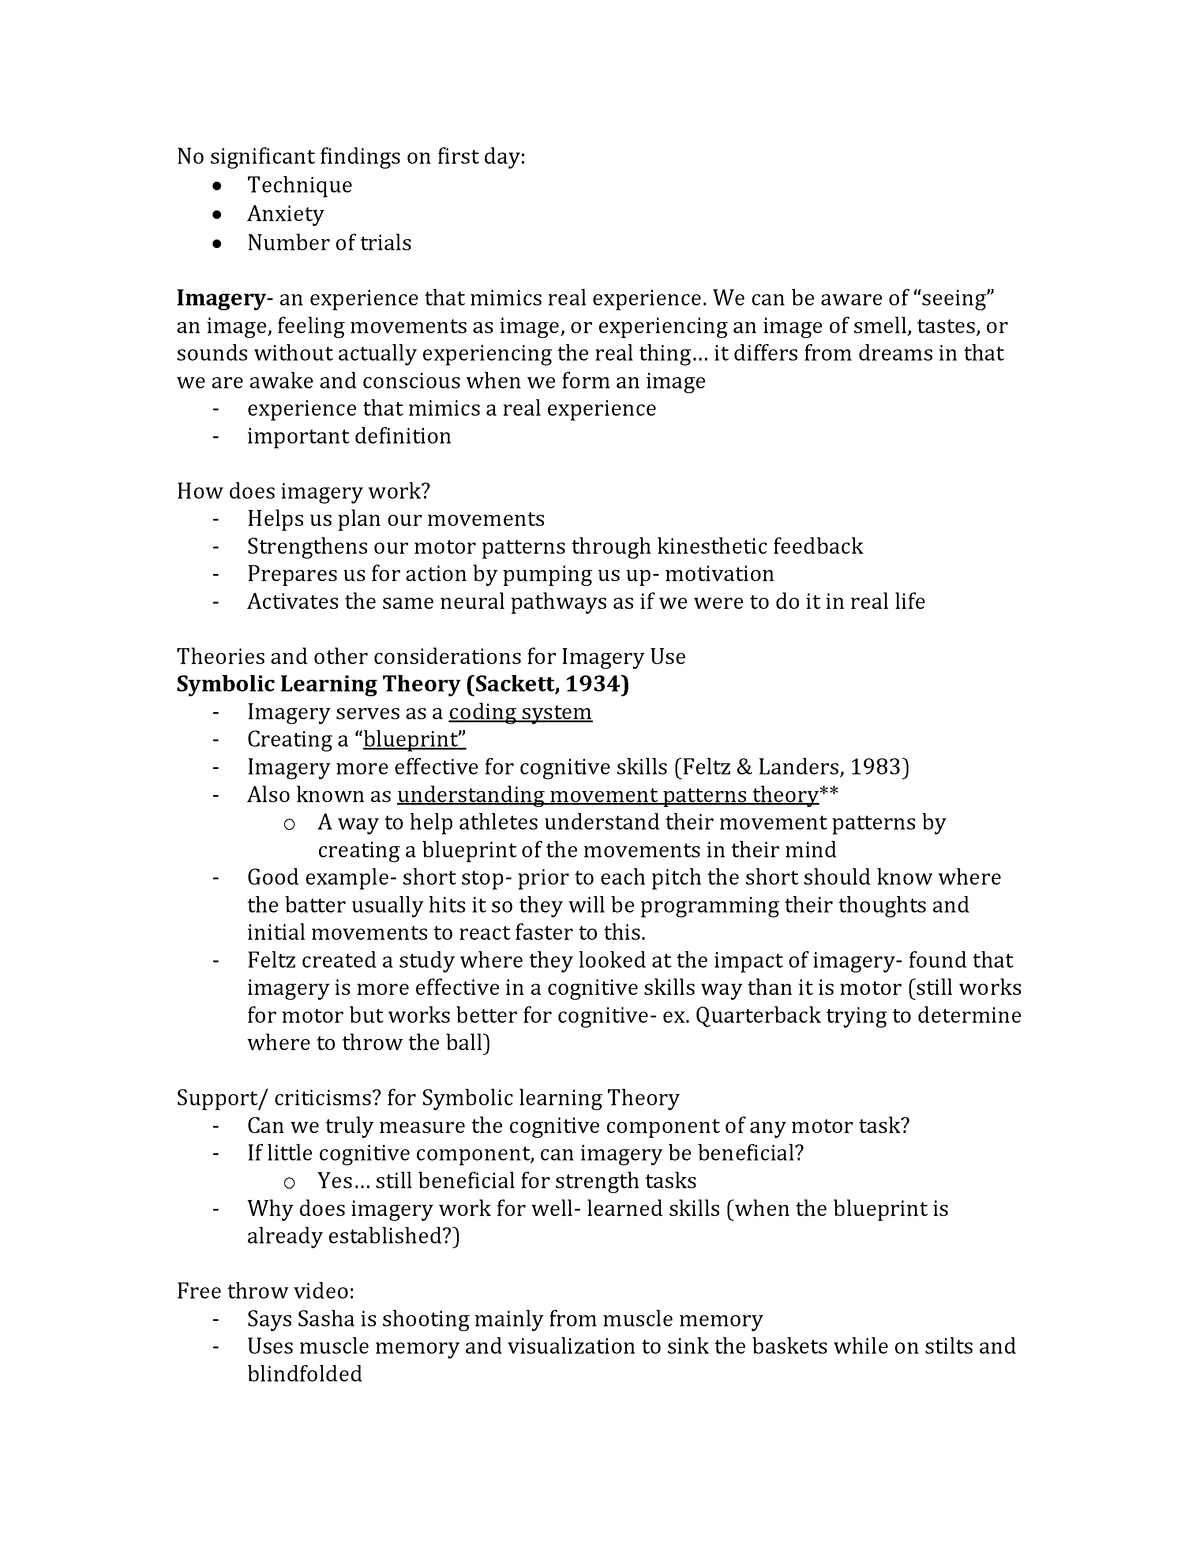 Lecture notes, all lectures - 95-303 - U of W - StuDocu